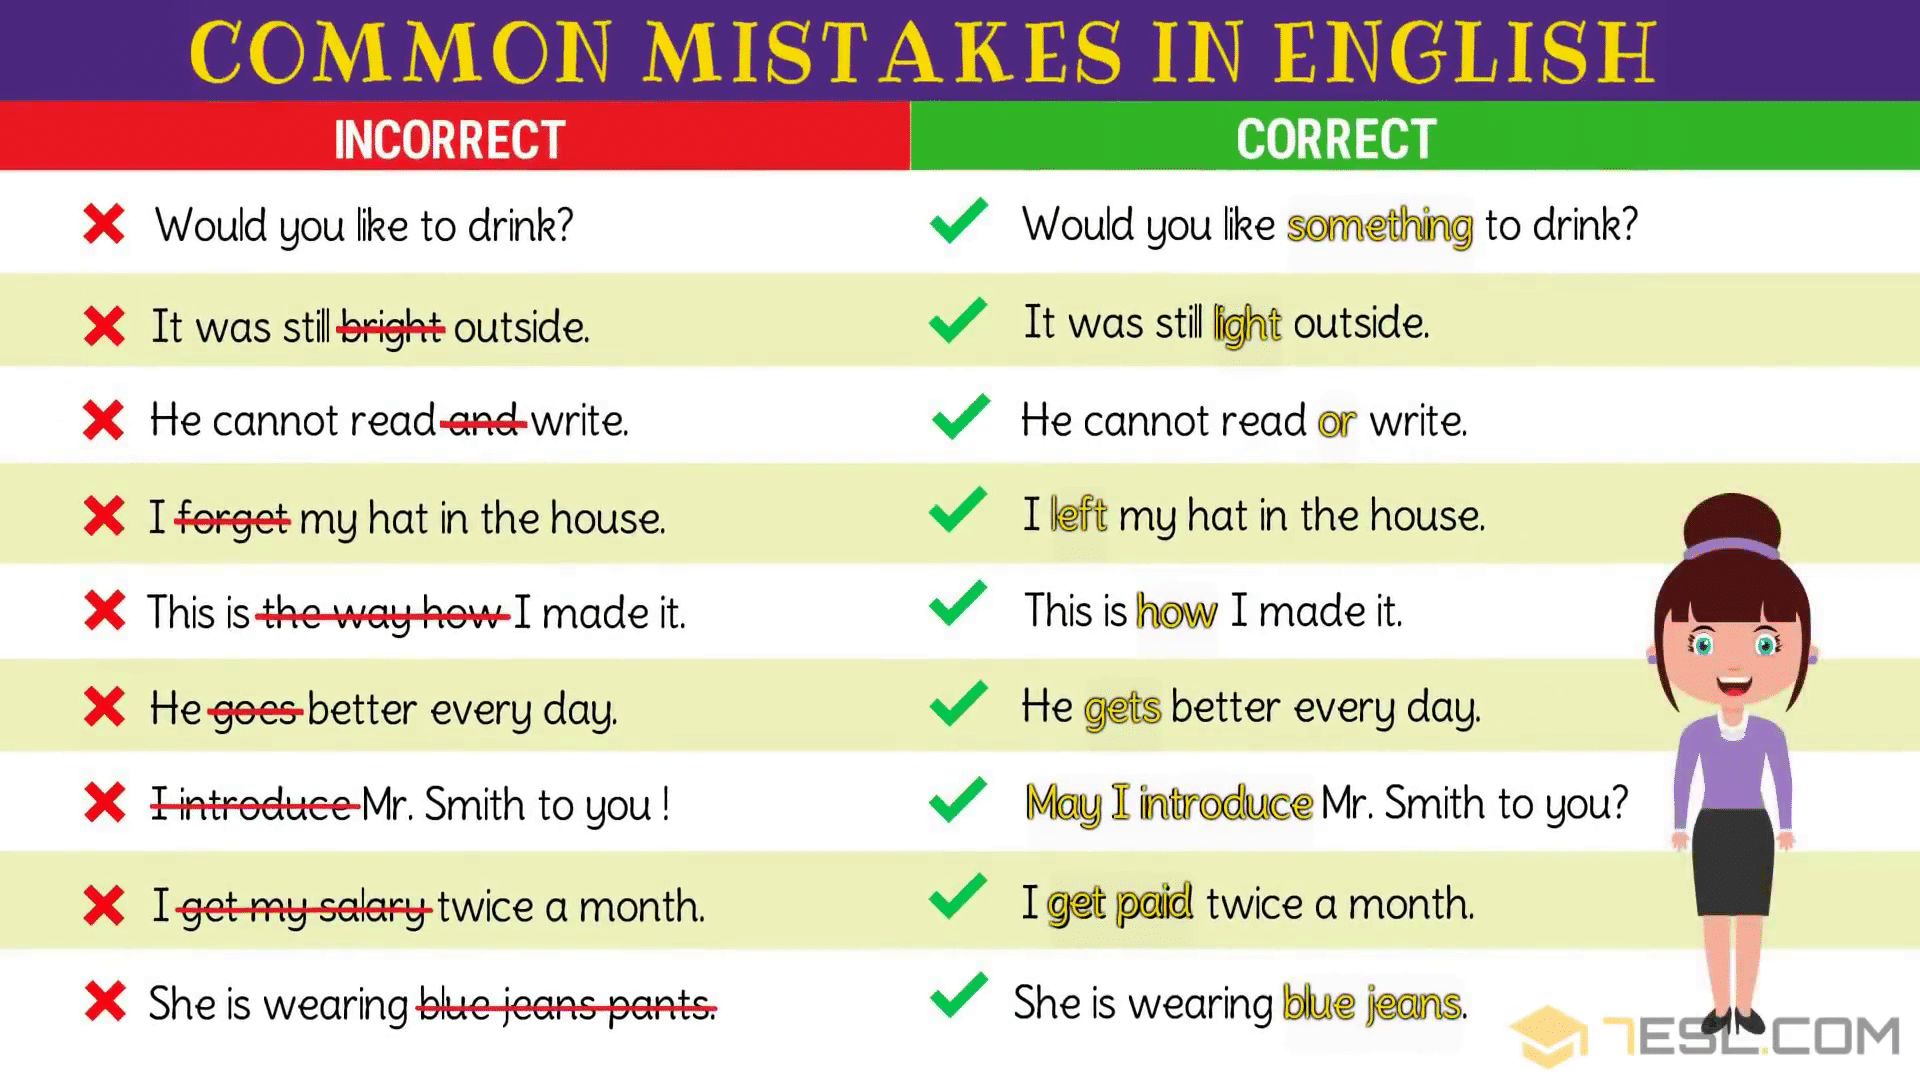 Grammatical Errors 170 Common Grammar Mistakes In English 7esl